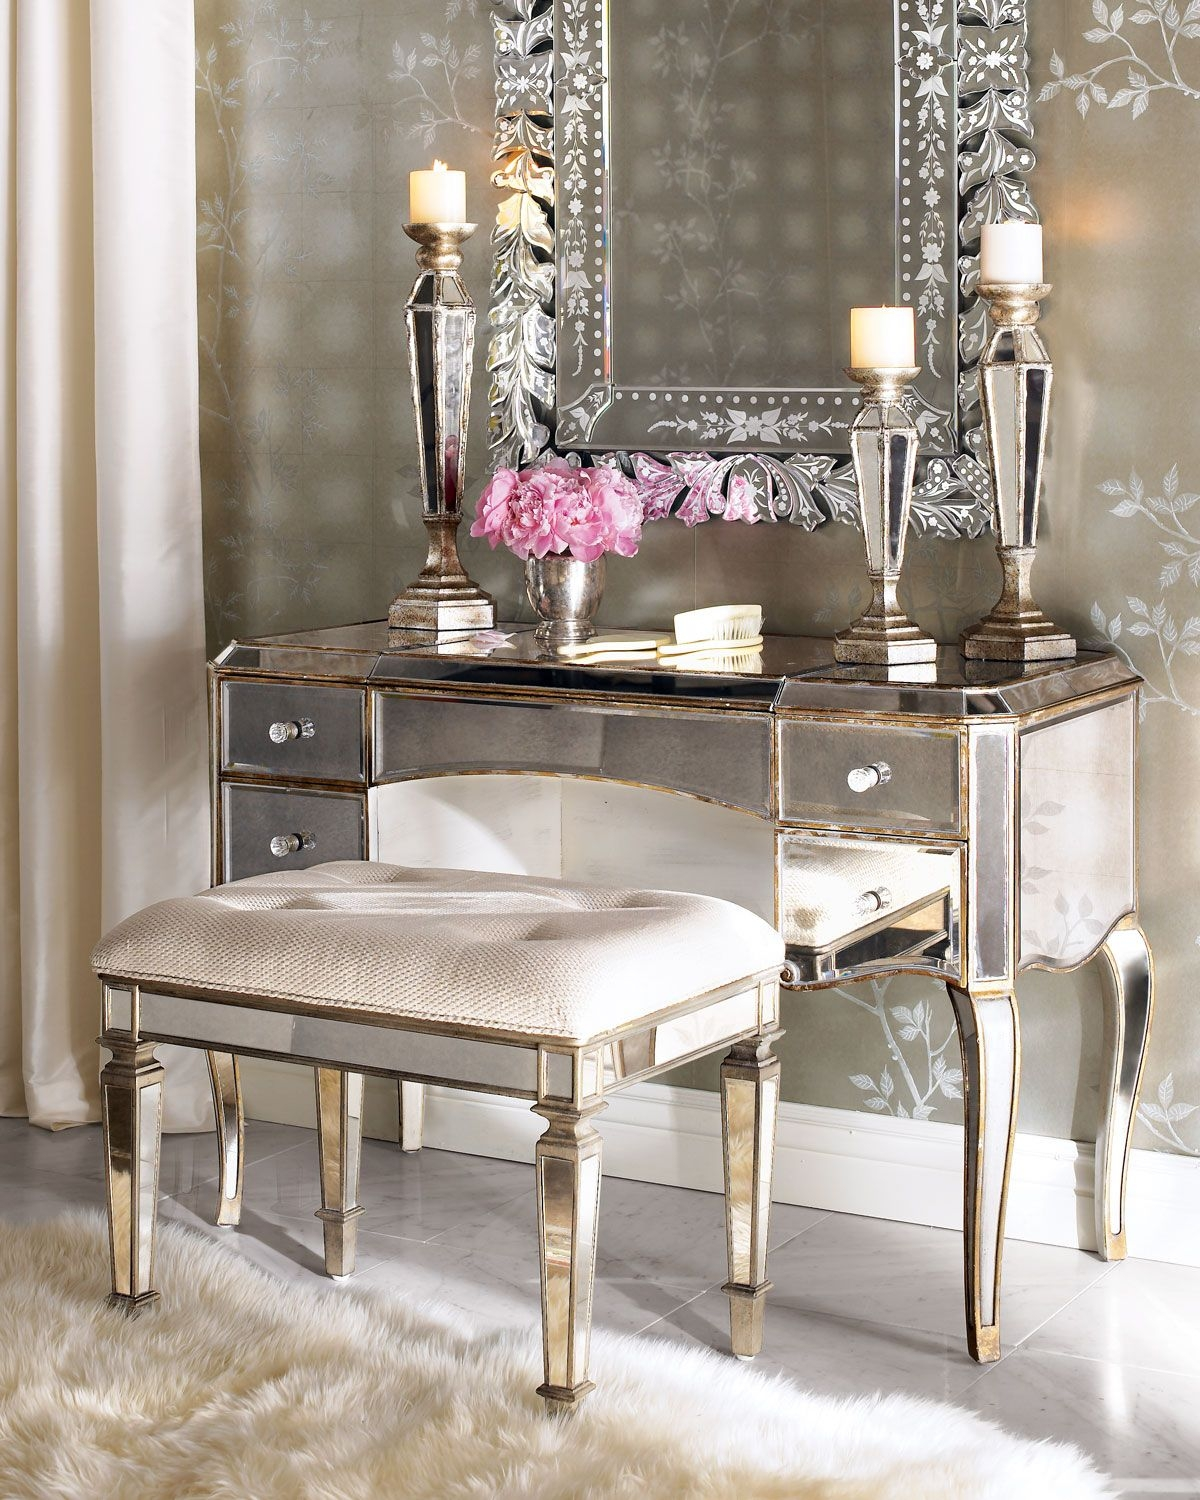 Genial Makeup Desk Mirror